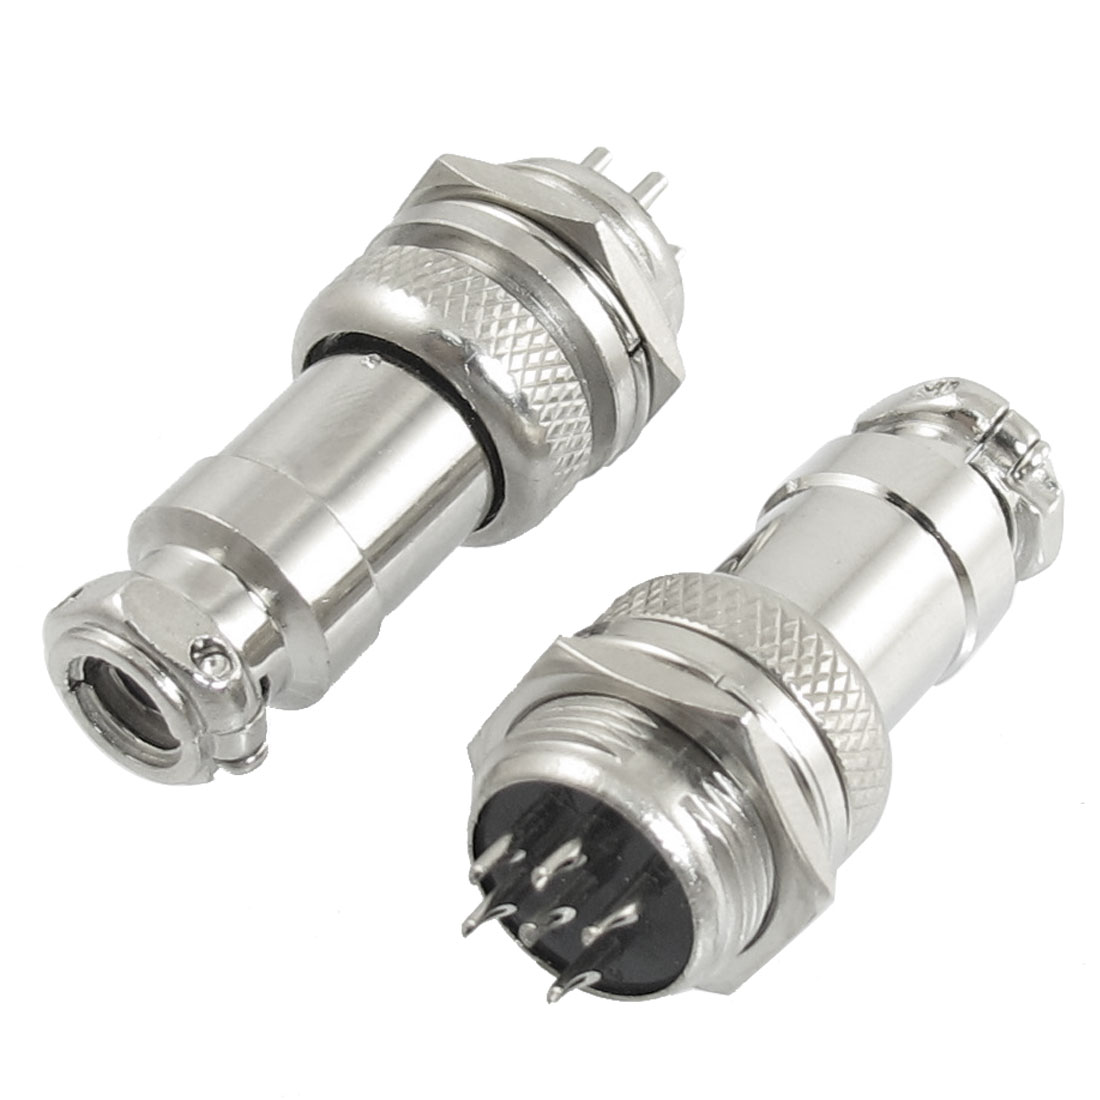 AC 200V 5A 1000V 6-Pin 6 Pin Screw Aviation Connector Joint 2Pcs